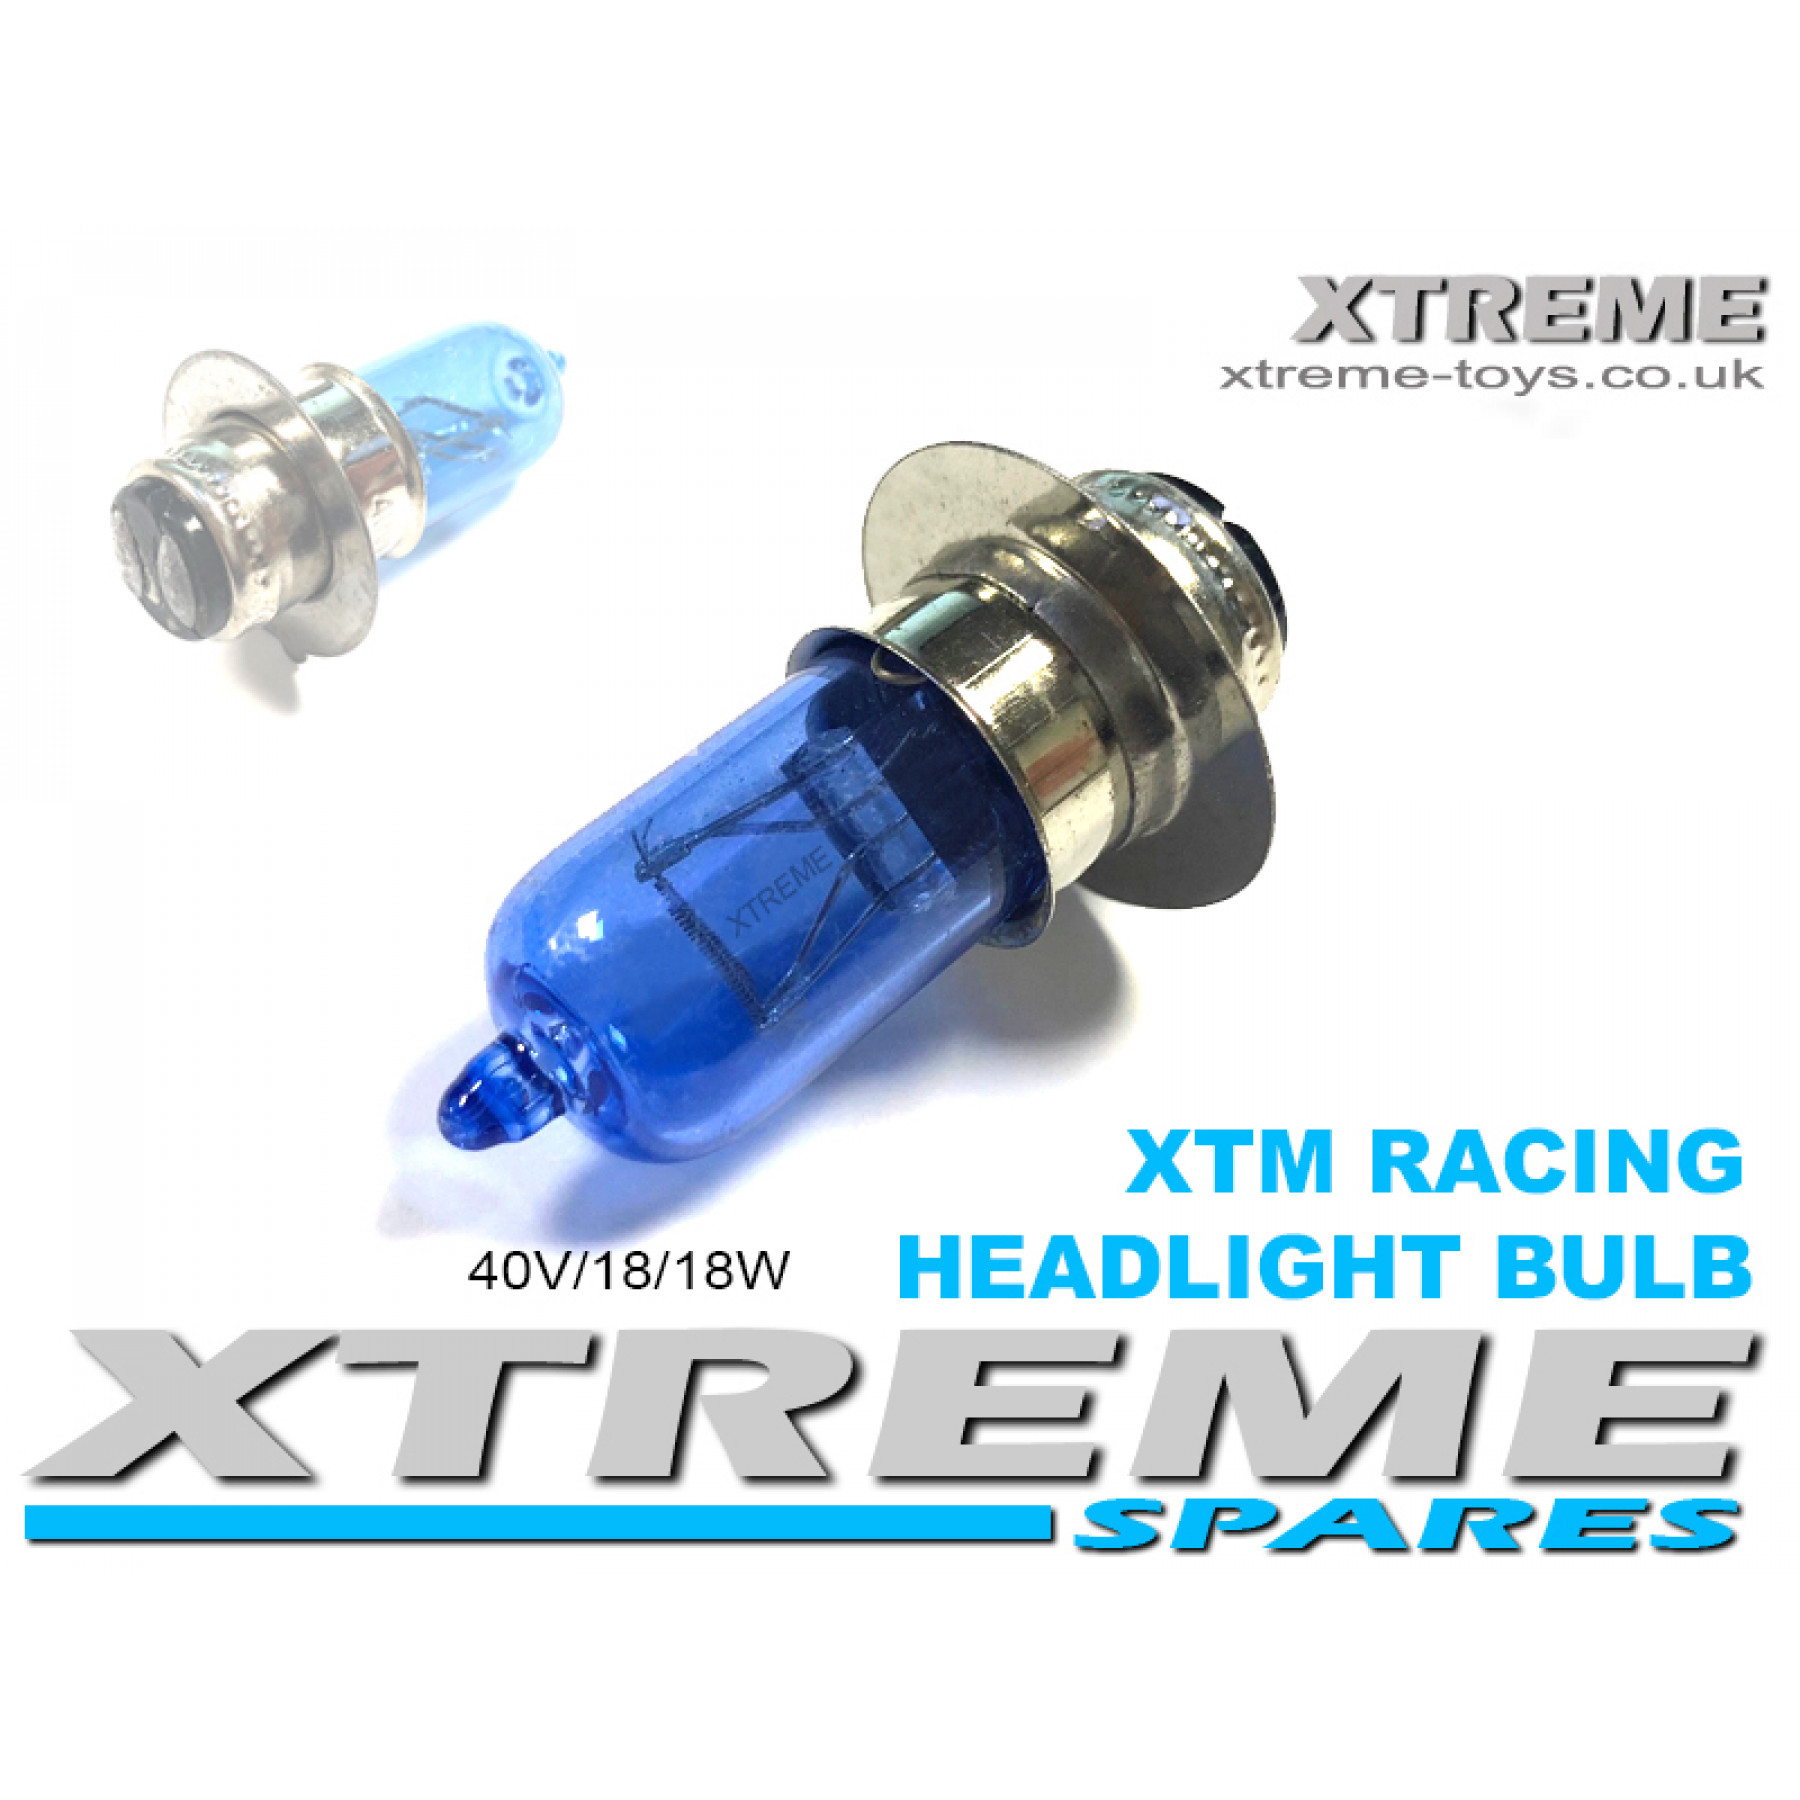 XTM RACING QUAD COMPLETE HEADLIGHT BULB